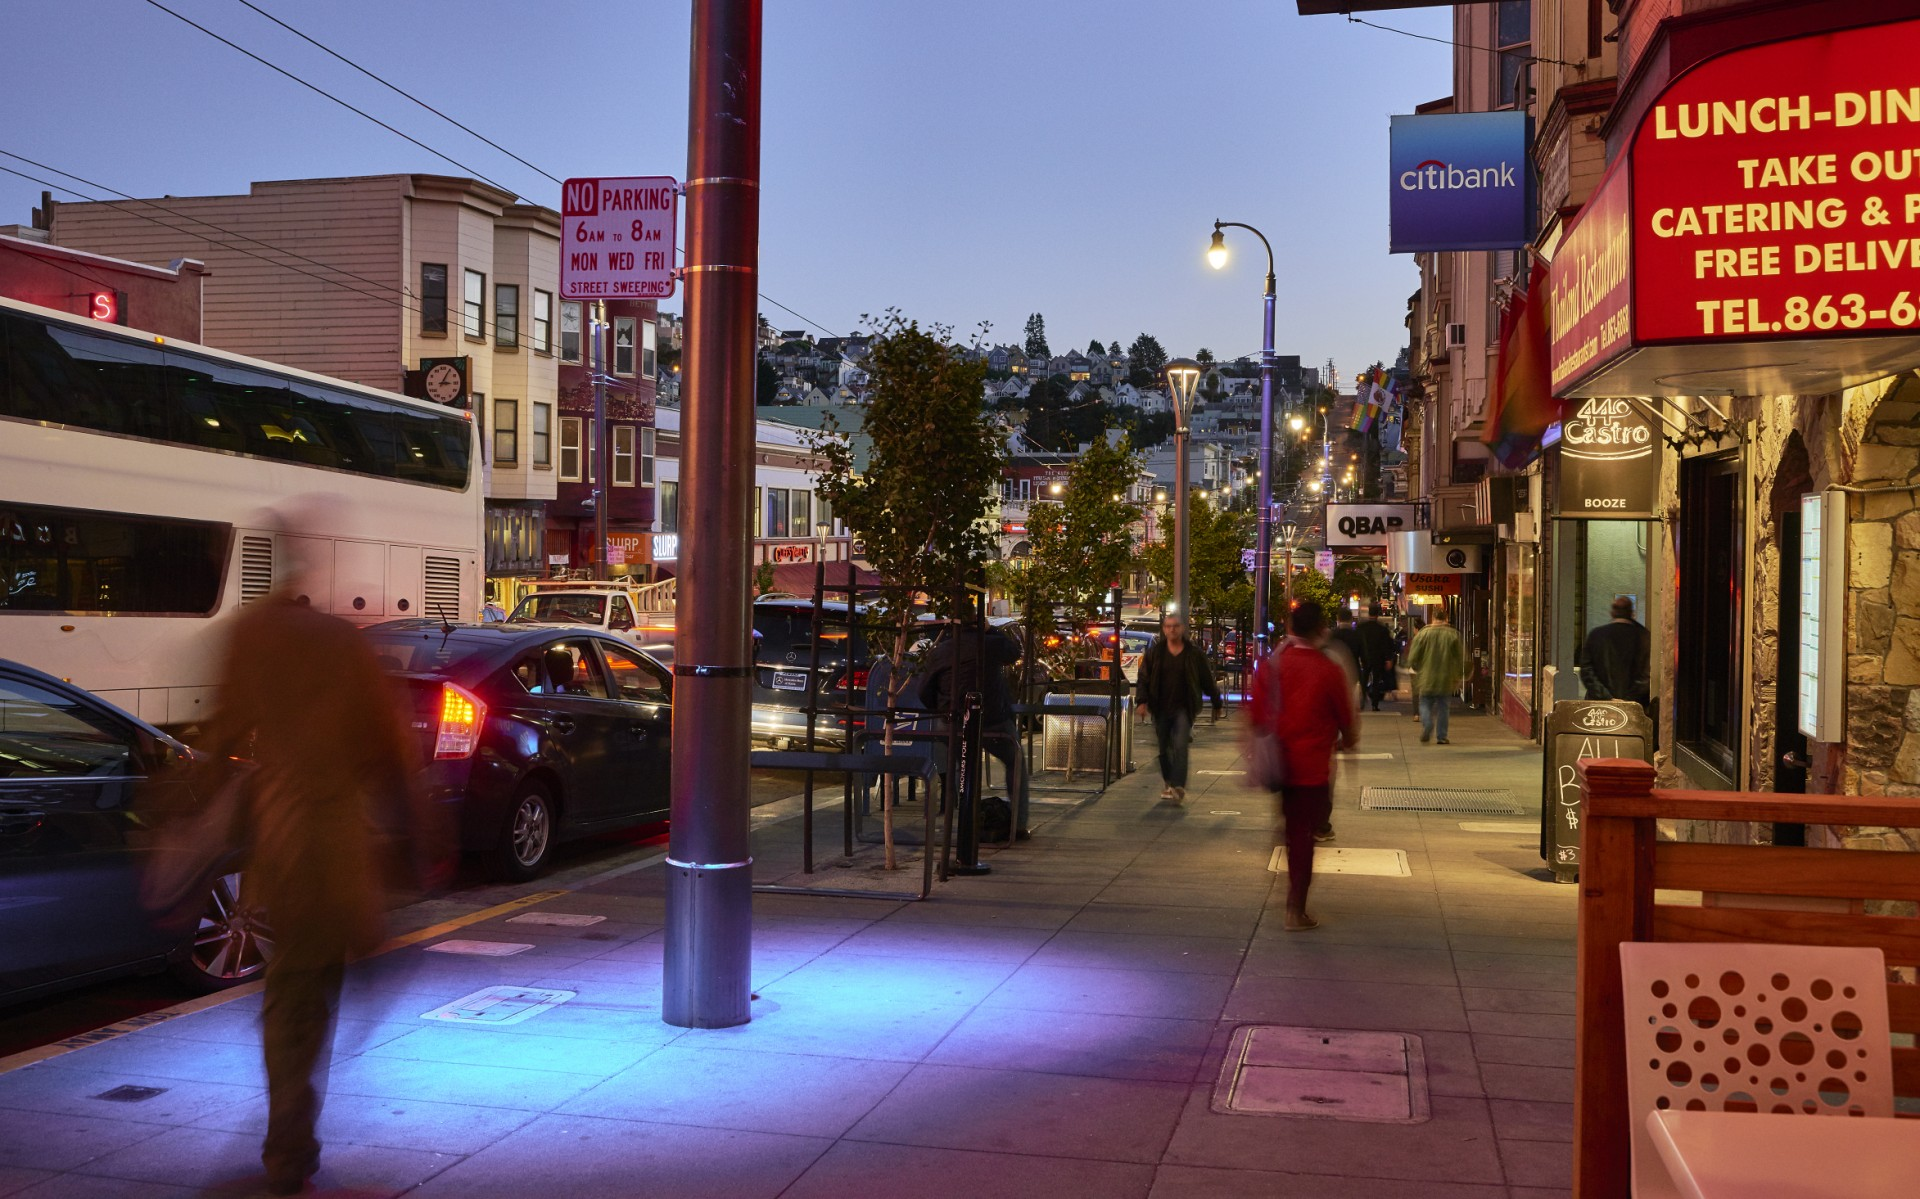 Lighting Systems Inc. worked with the San Francisco Public Utilities Commission to design a new color changing lighting system for the Castro Street Business District.